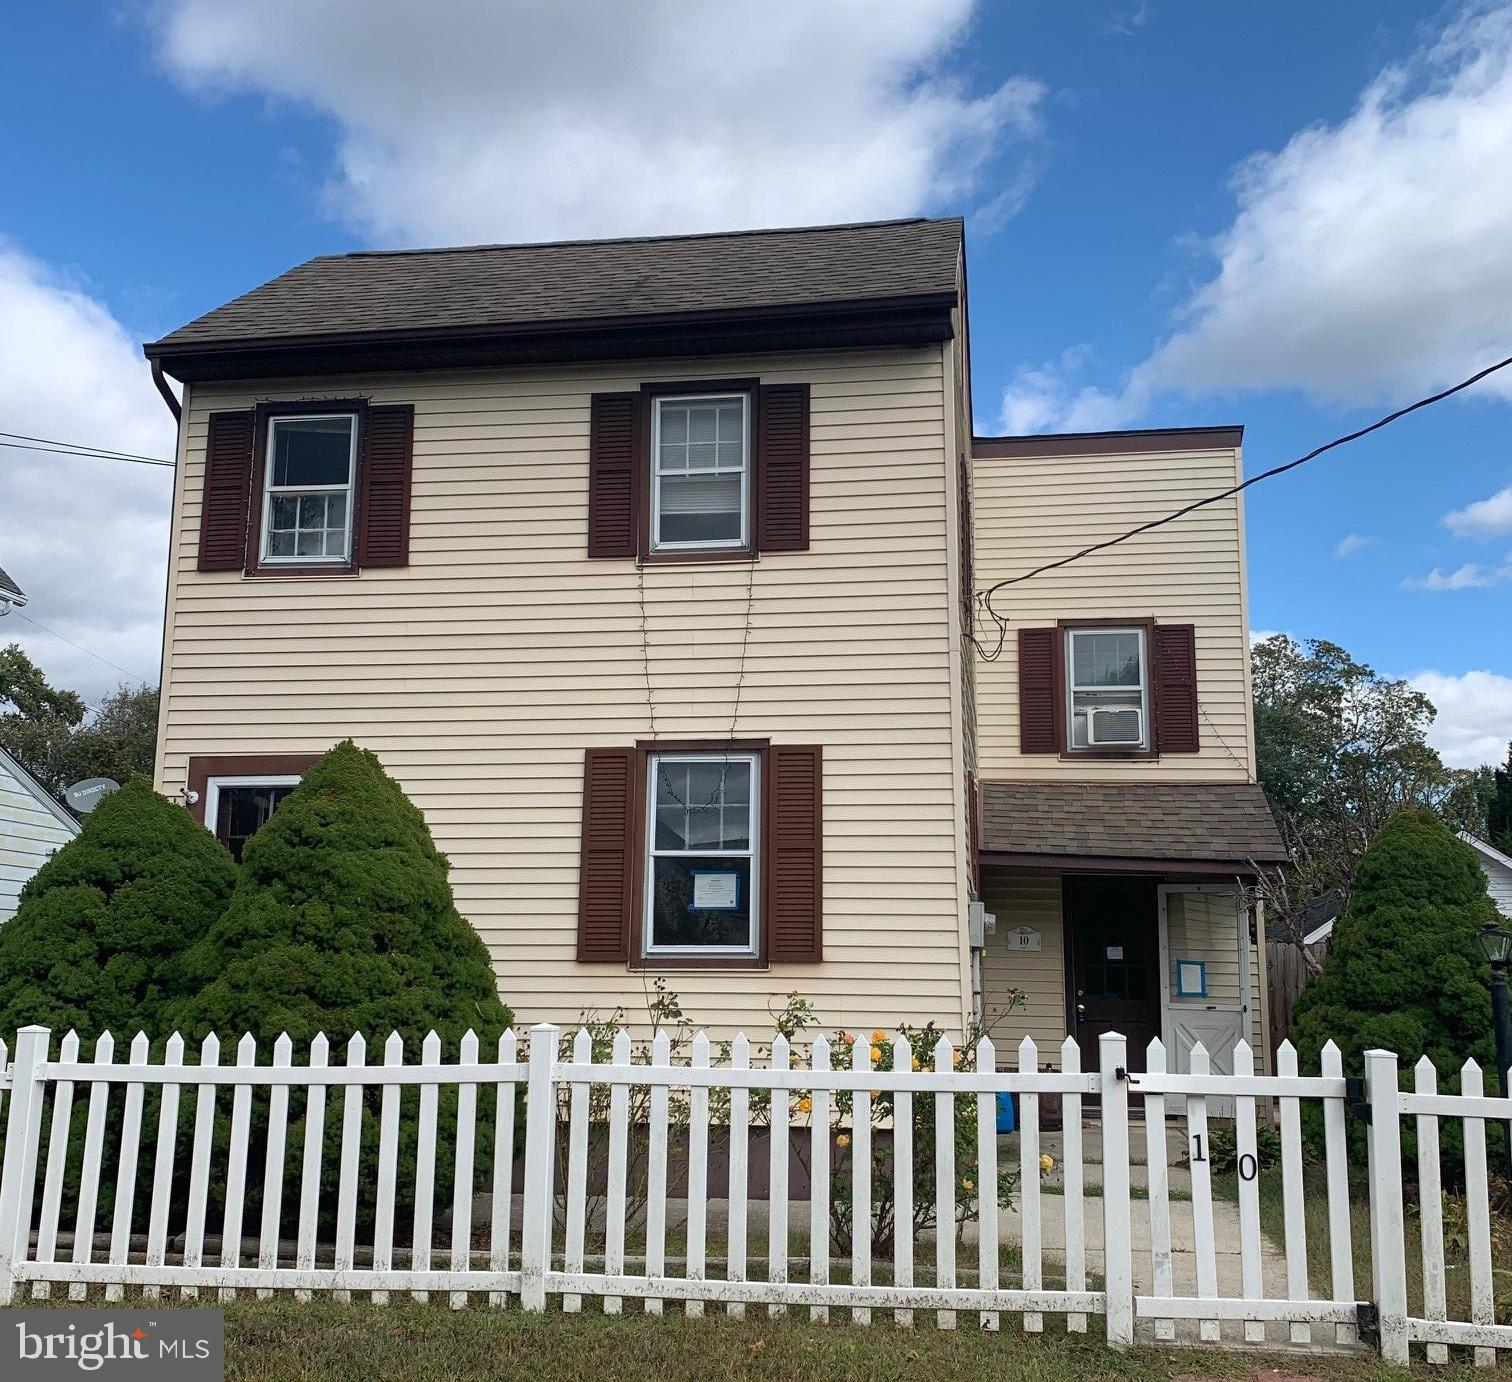 10 HIGH STREET, QUINTON, NJ 08072